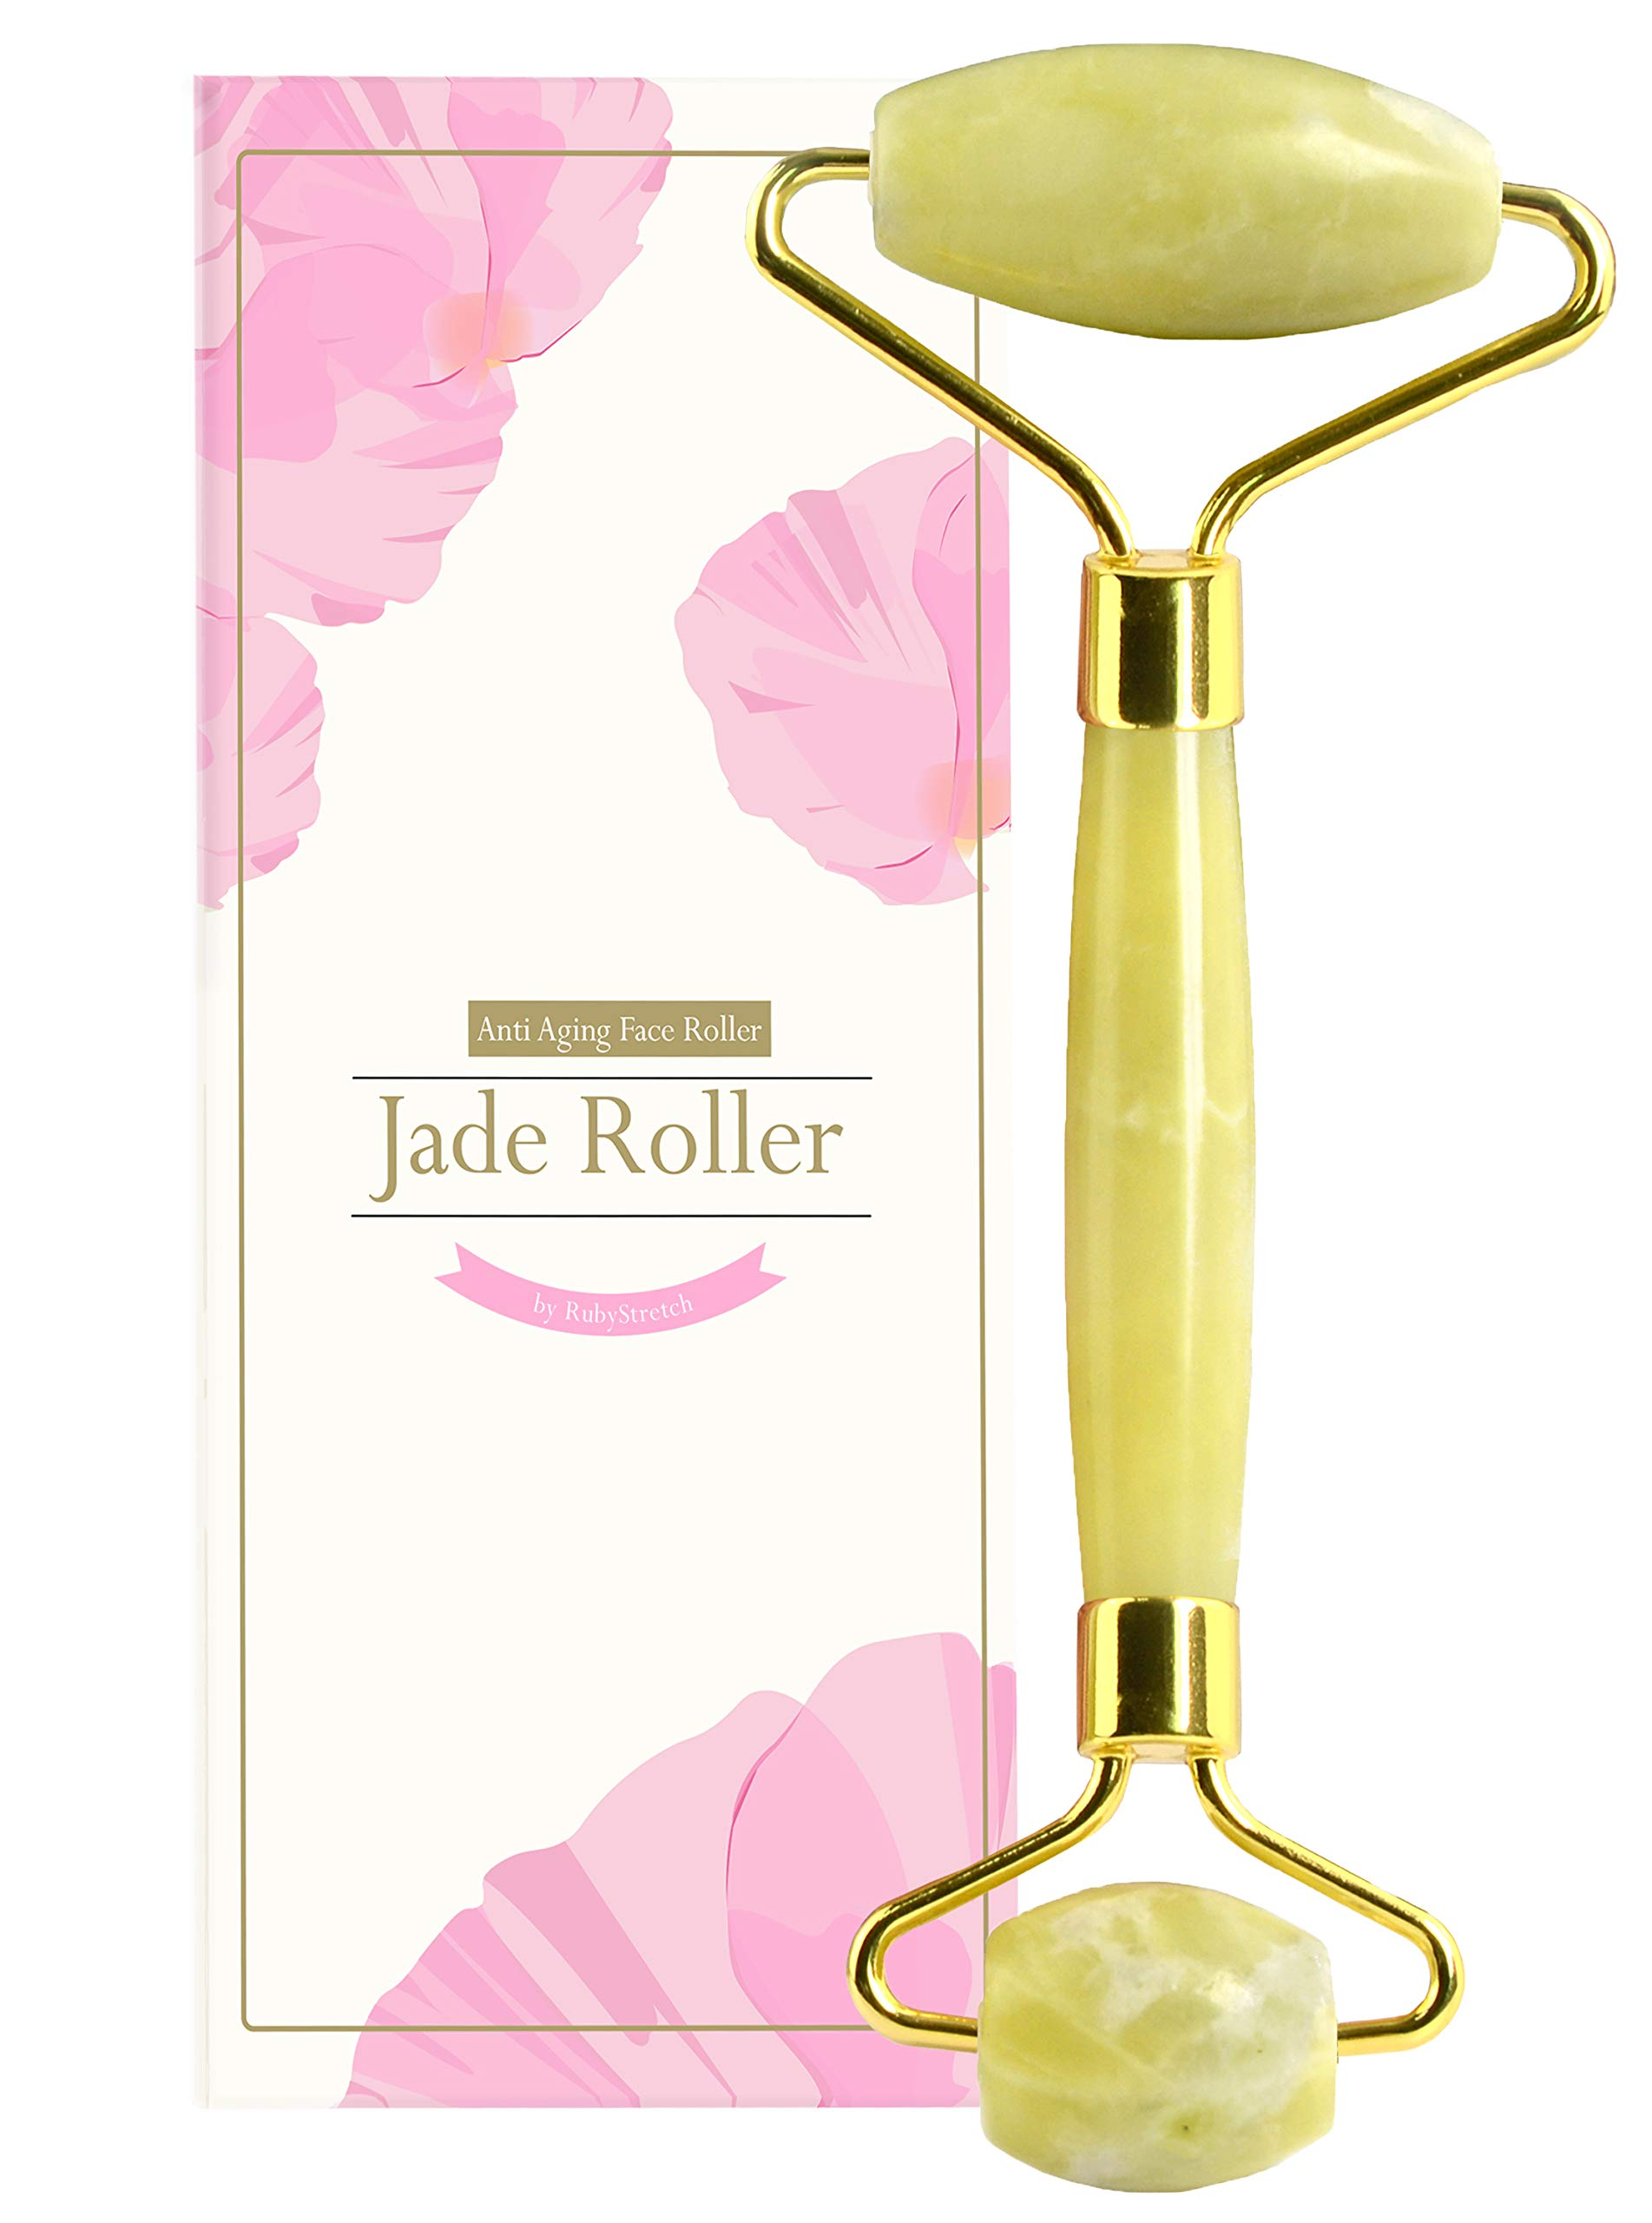 Jade Roller for Face, Eye & Neck - Jade Facial Roller Massager Made Natural Jade Roller For Face - Gua Sha Scrapping (Jade Roller for Face) by RubyStretch